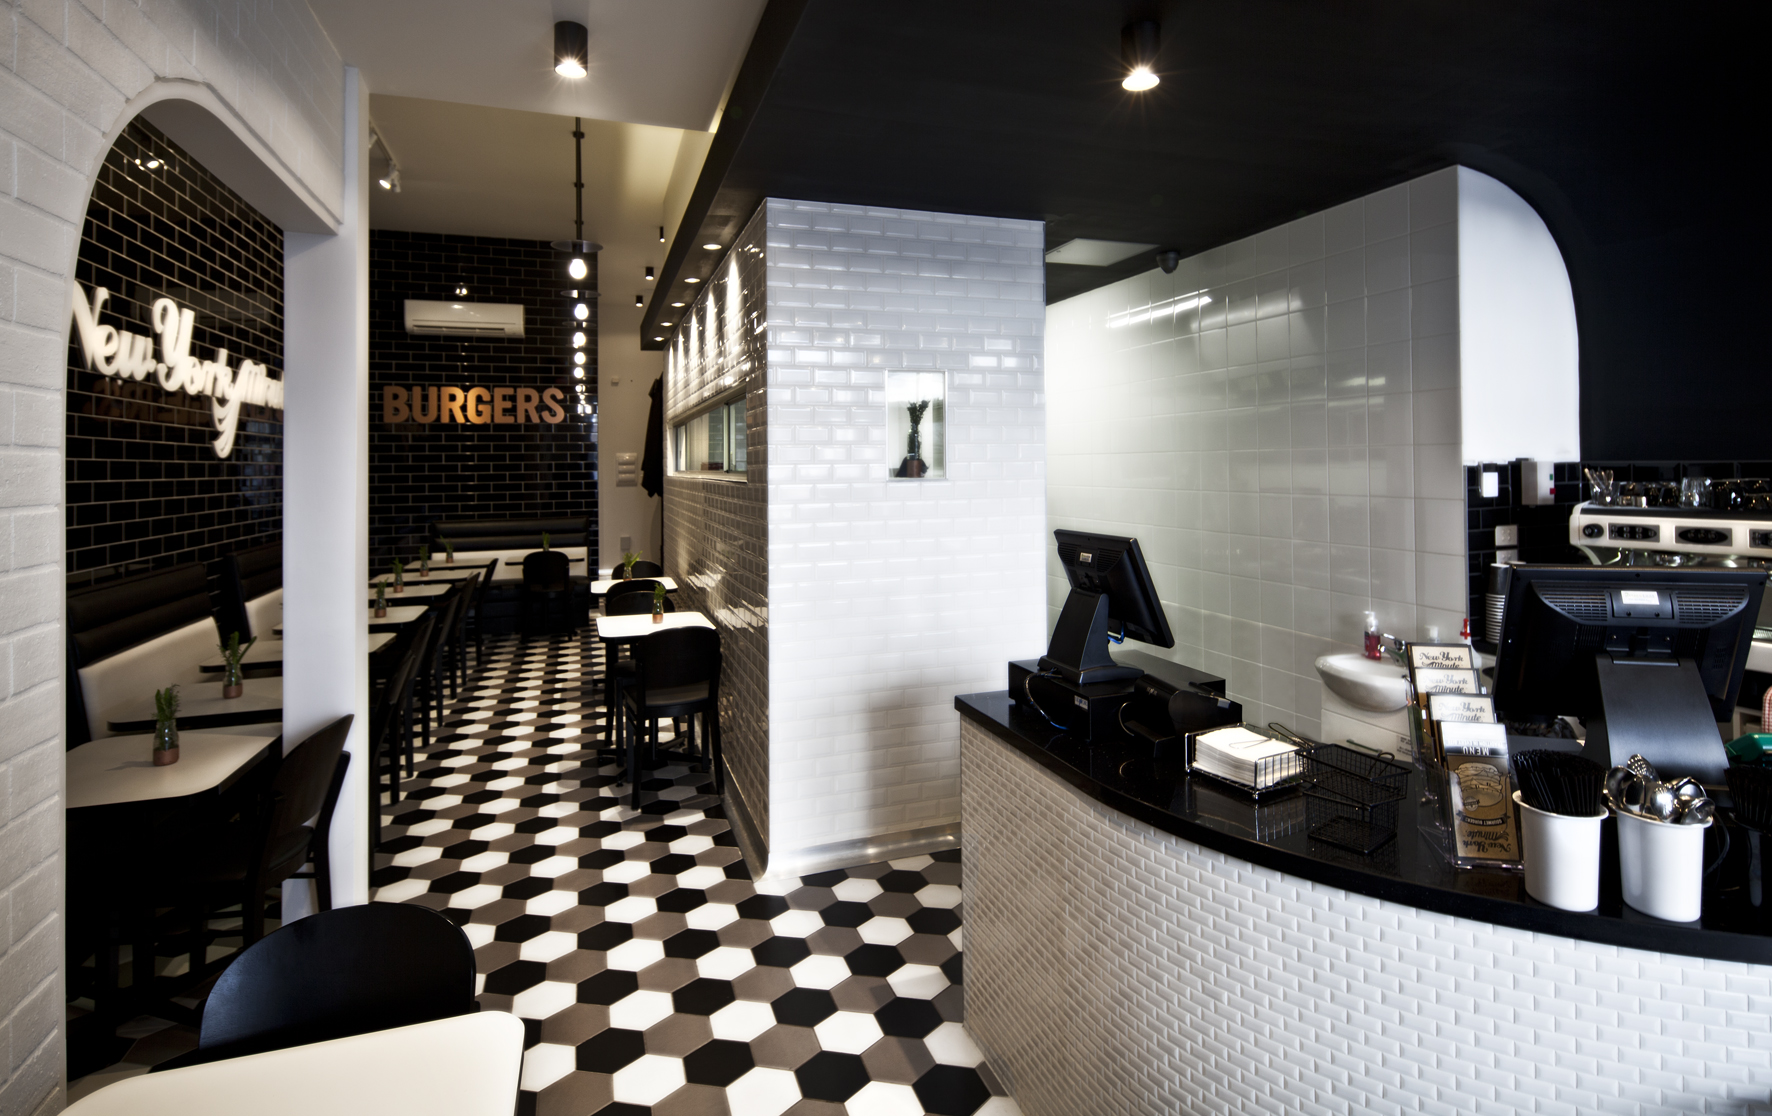 The Carlton - New York Minute Burgers - Restaurant fit out - Carlton